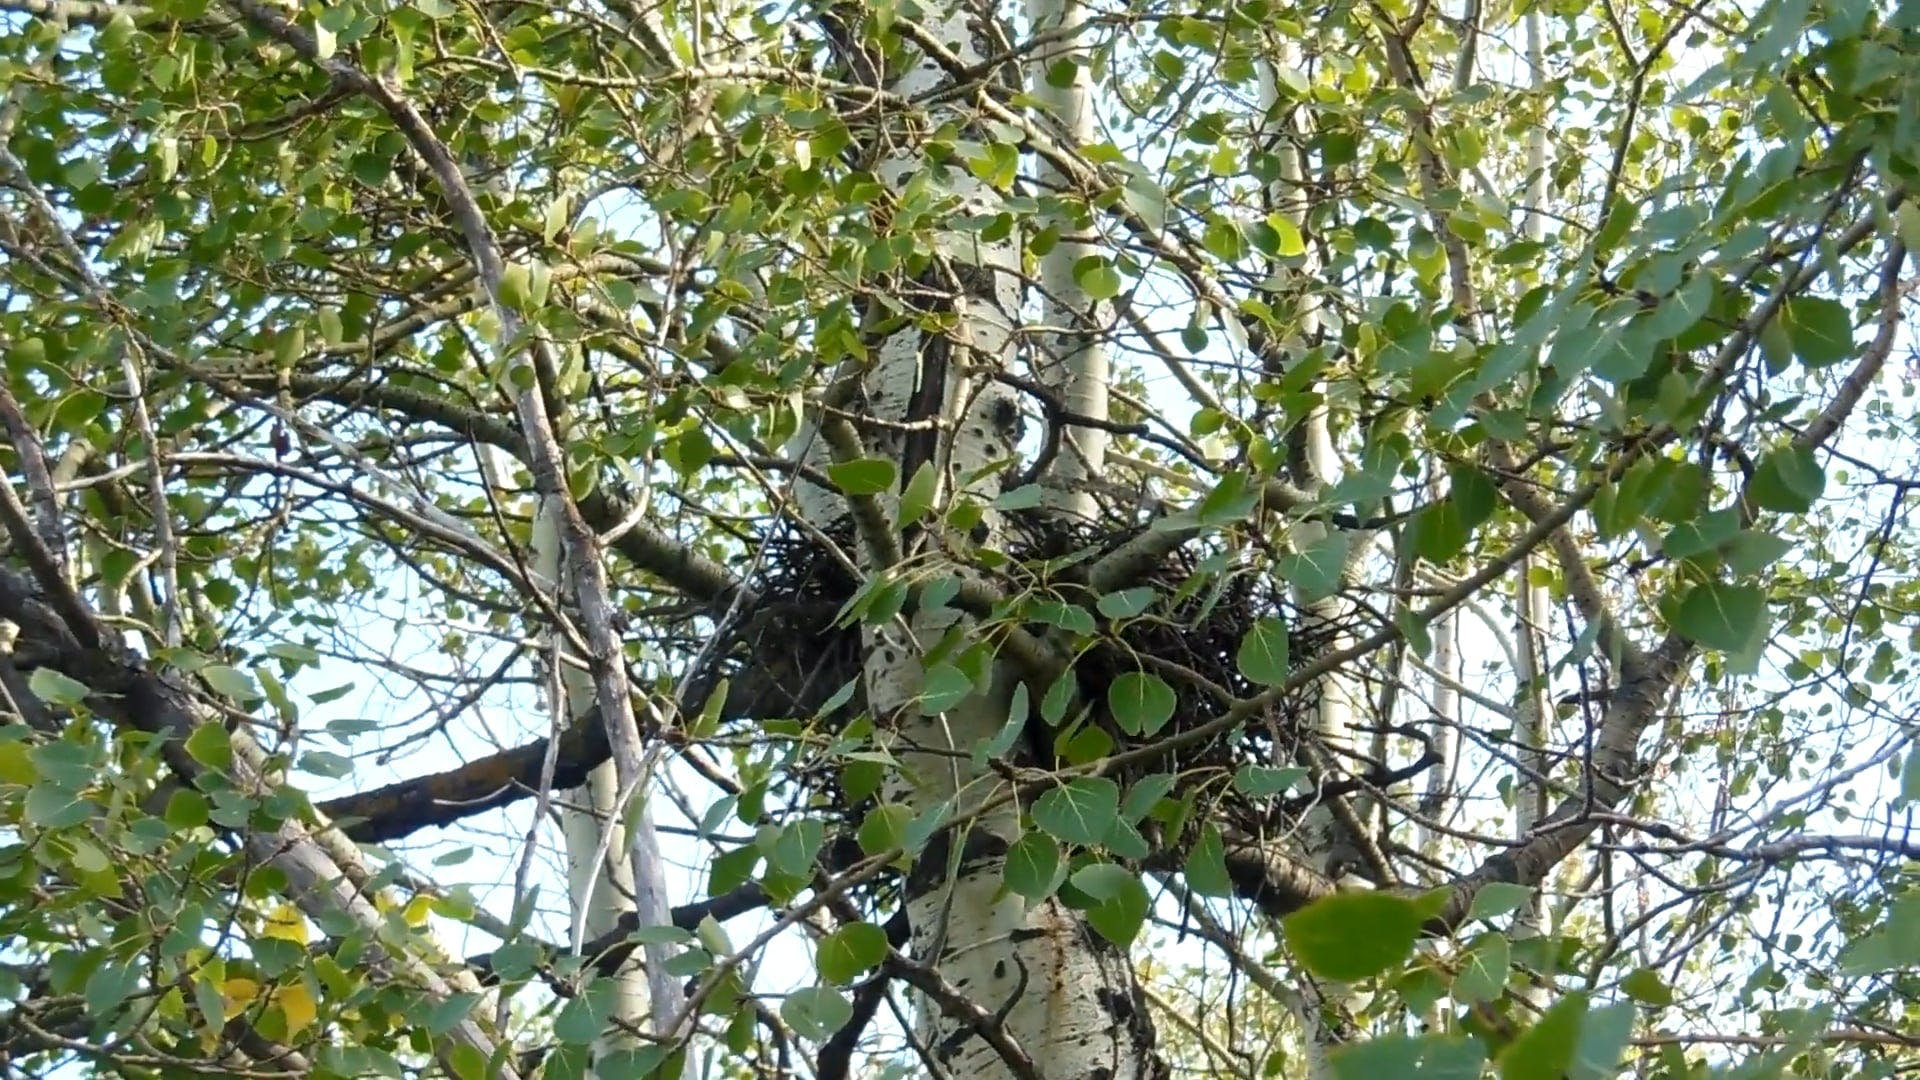 Close View Of A Nest In The Tree